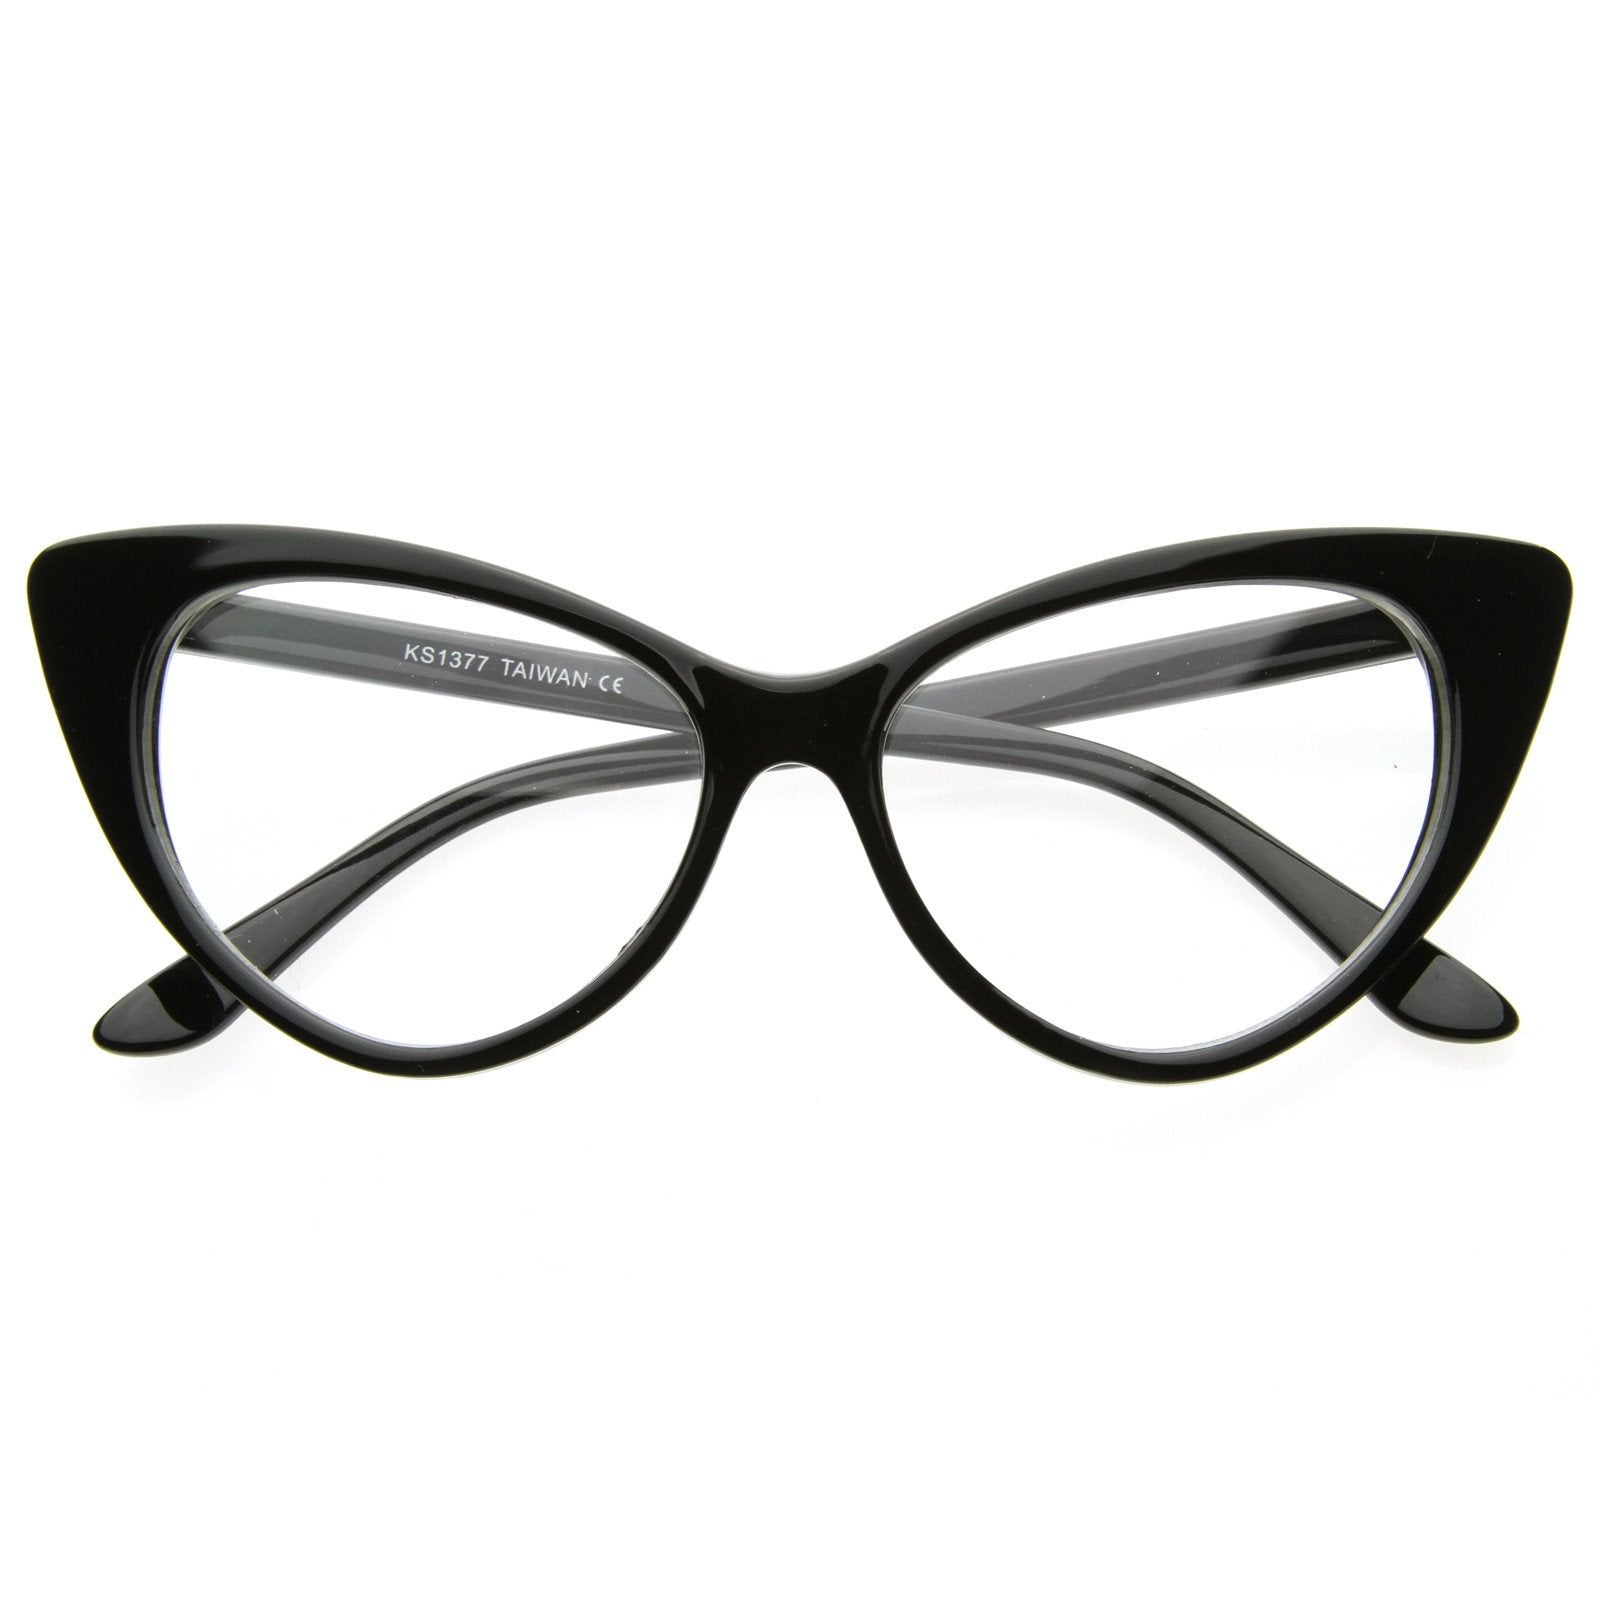 06475c0df6 ... Vintage Mod Fashion Cat Eye Clear Lens Glasses 8435 · Black